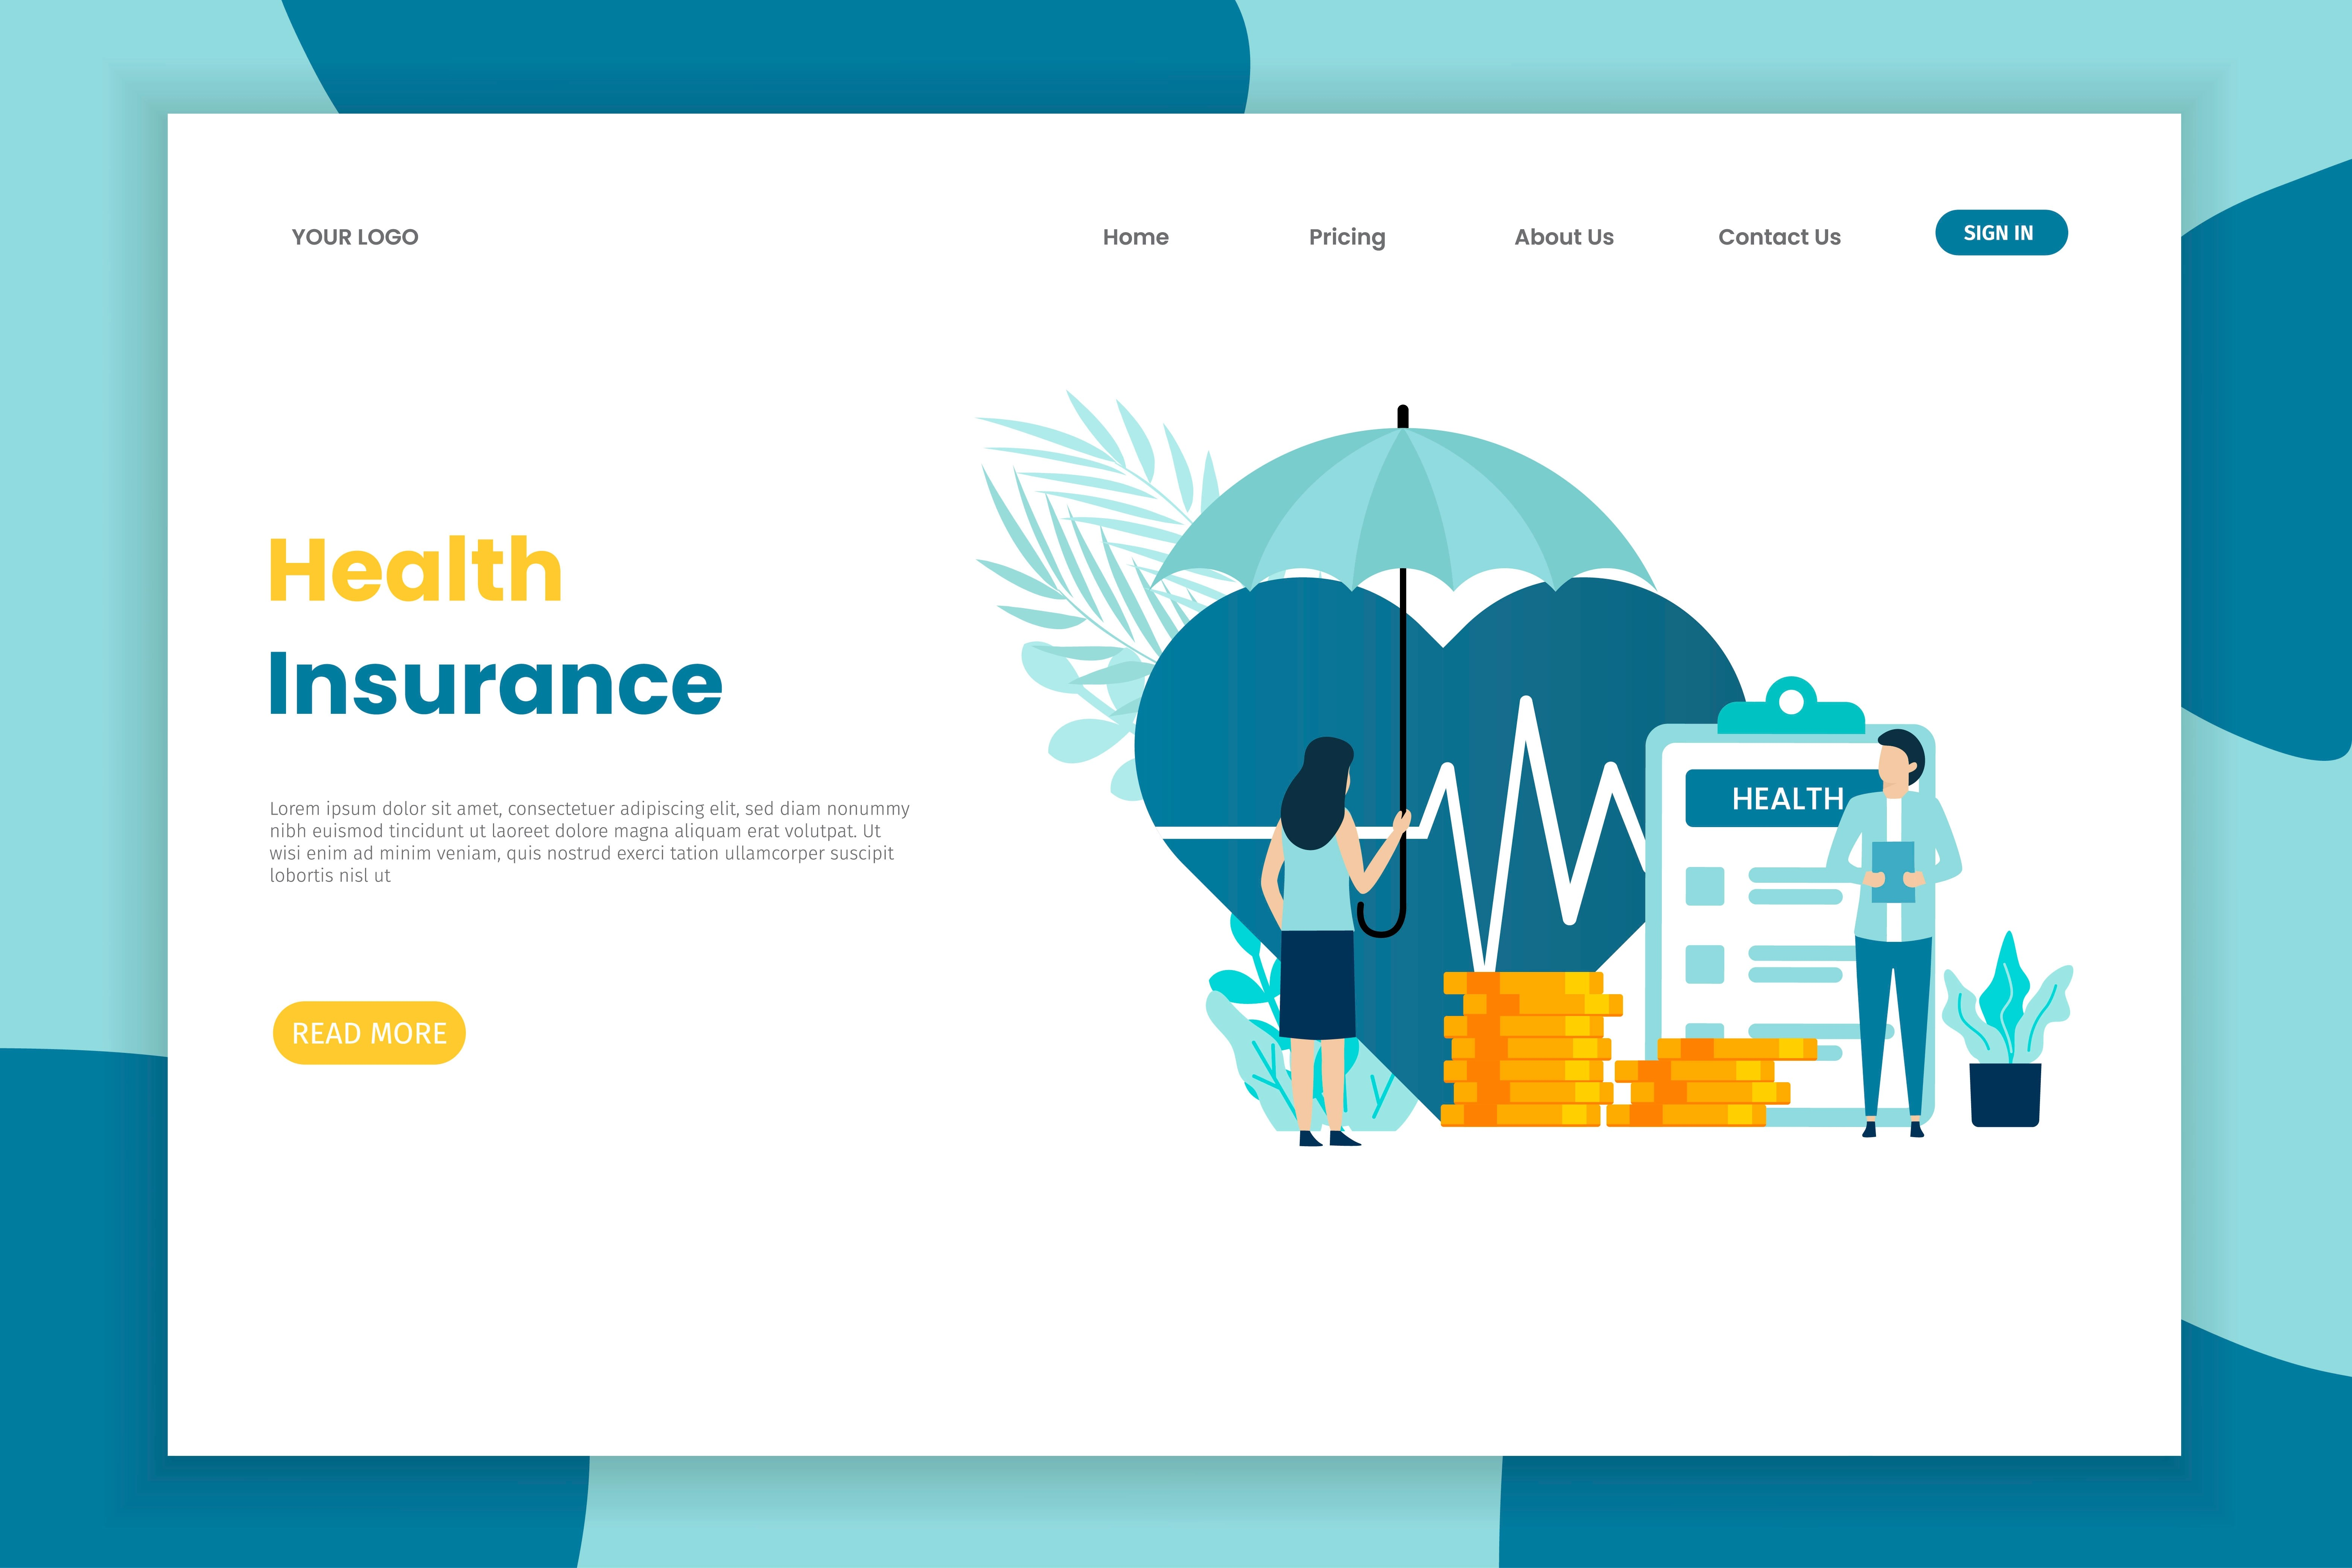 Woman With Umbrella Health Insurance Landing Page 1010209 Vector Art At Vecteezy